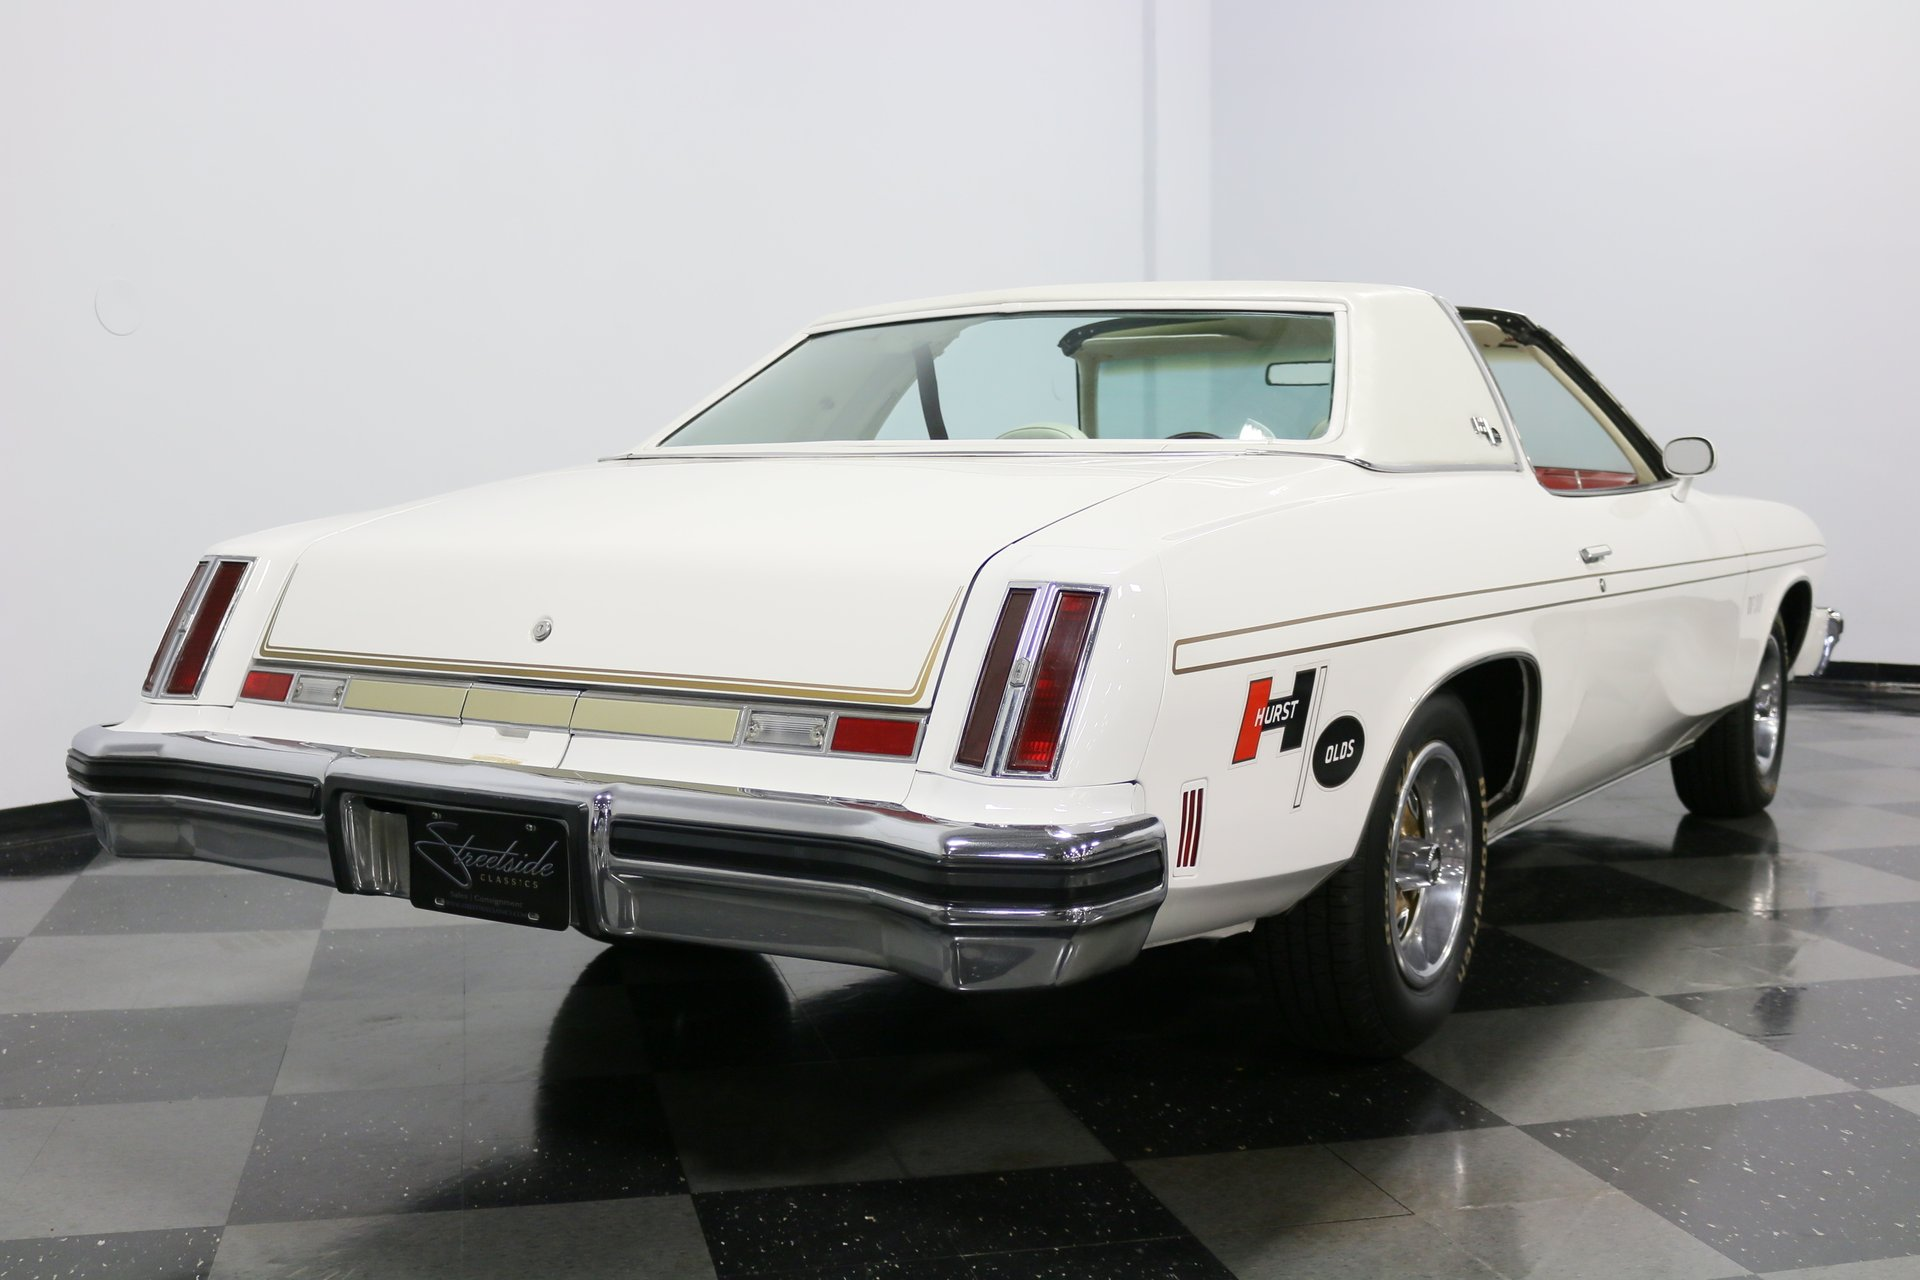 1975 Oldsmobile Cutlass Hurst/Olds for sale #109340 | MCG